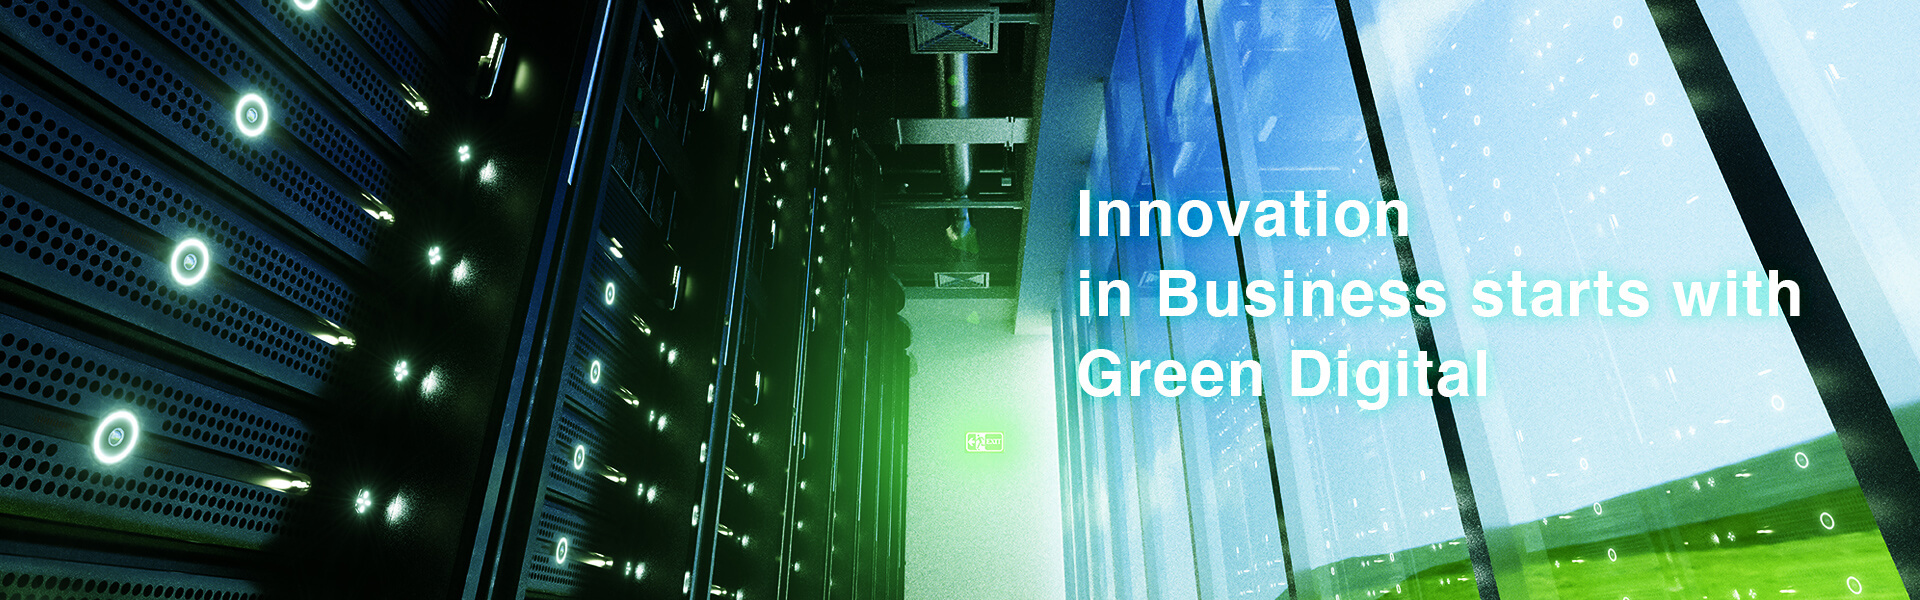 [Key Visual]Innovation in Business starts with Green Digital